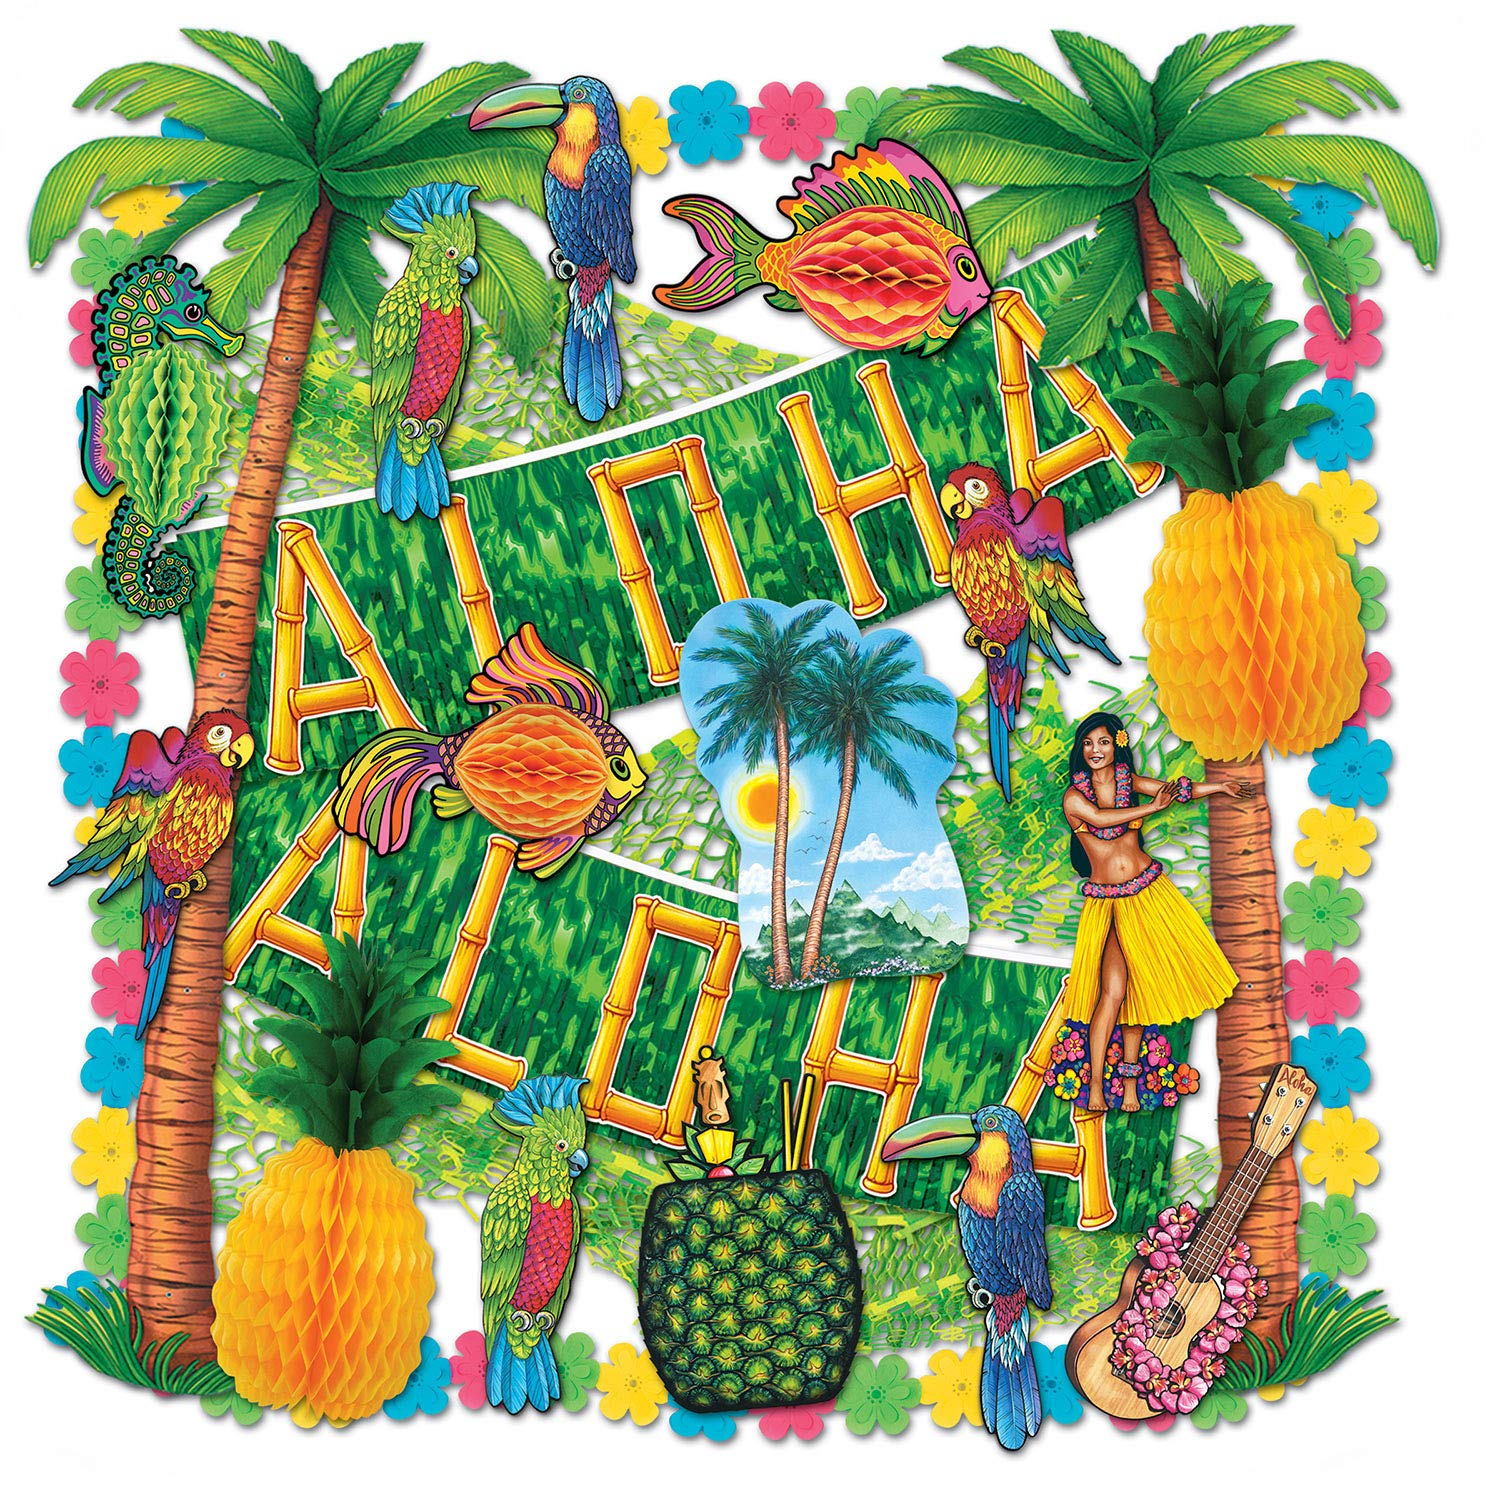 Beistle 55605 27-Piece Luau Decorating Kit